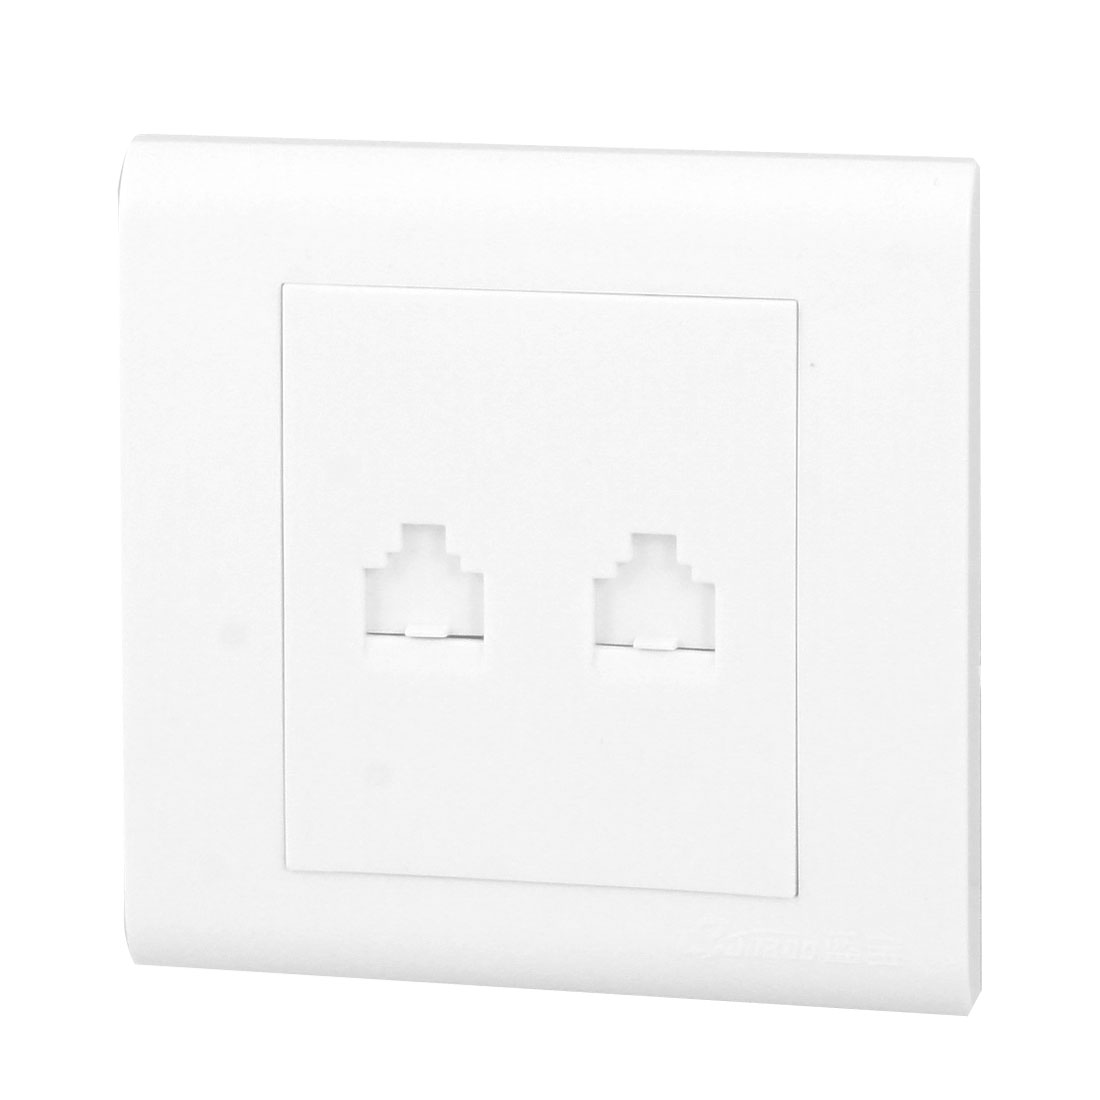 White 8P8C 8P4C RJ45 Network Socket Phone Outlet Jack Wall Face Plate Panel